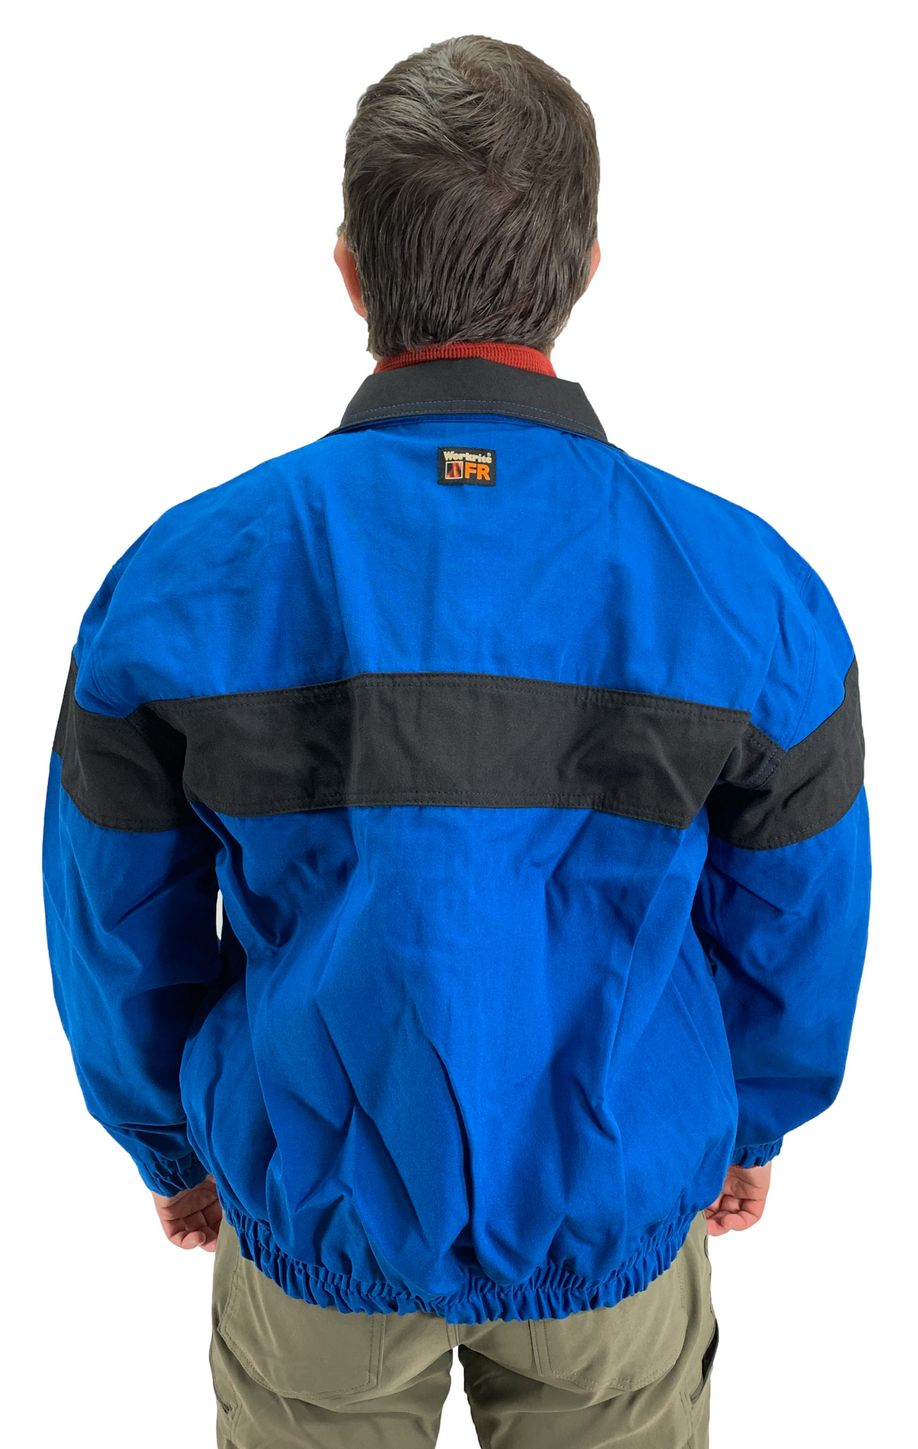 workrite-fire-resistant-safety-jacket-300nx603006-6-oz-nomex-iiia-royal-blue-back.jpg